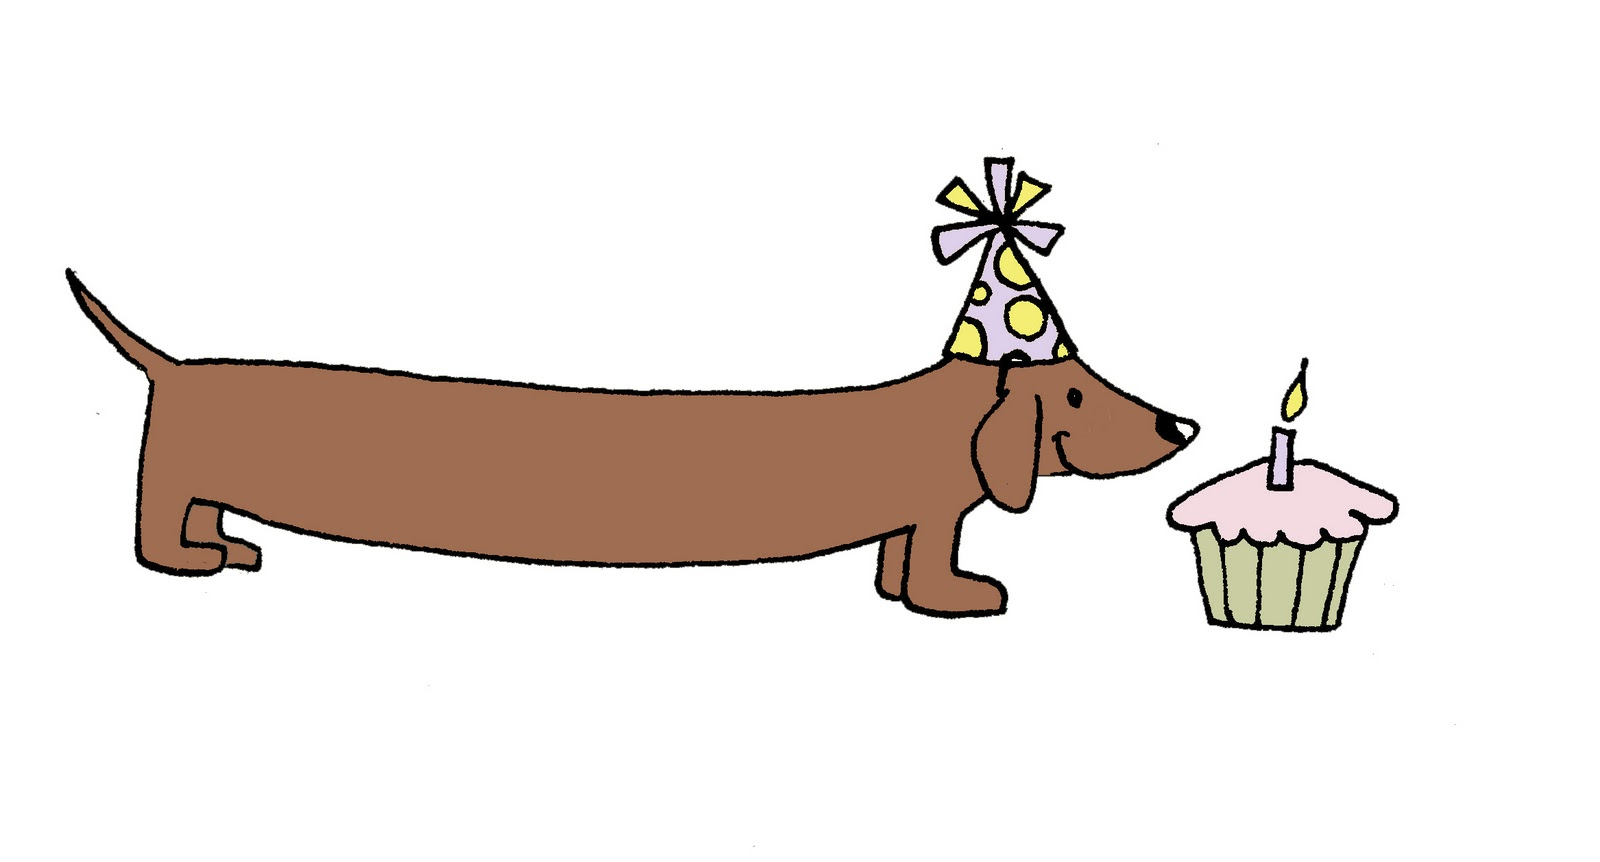 hight resolution of dachshund 0 images about hugs on belated birthday card clip art